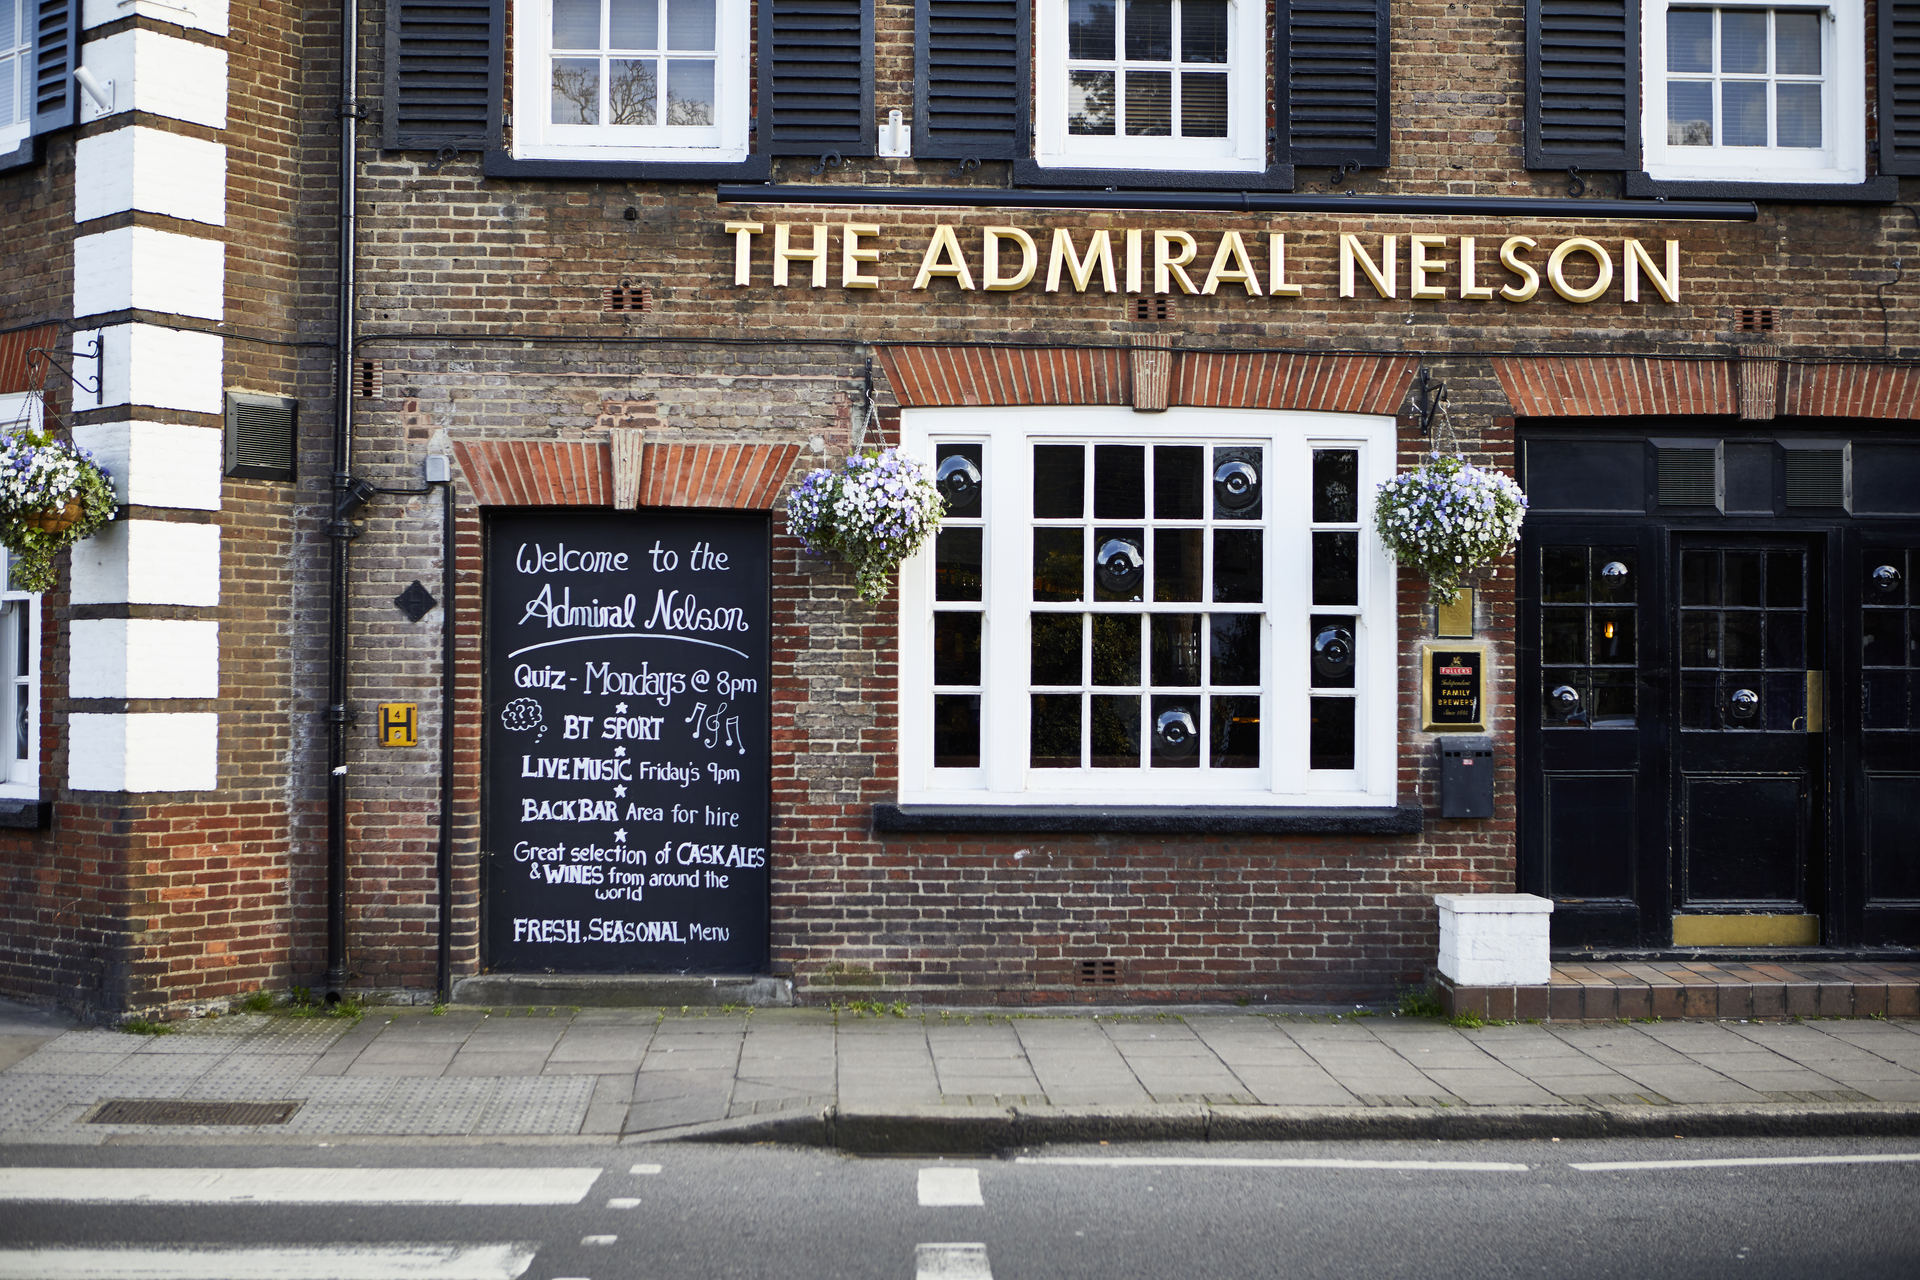 The Admiral Nelson Fullers Pub And Restaurant In Whitton